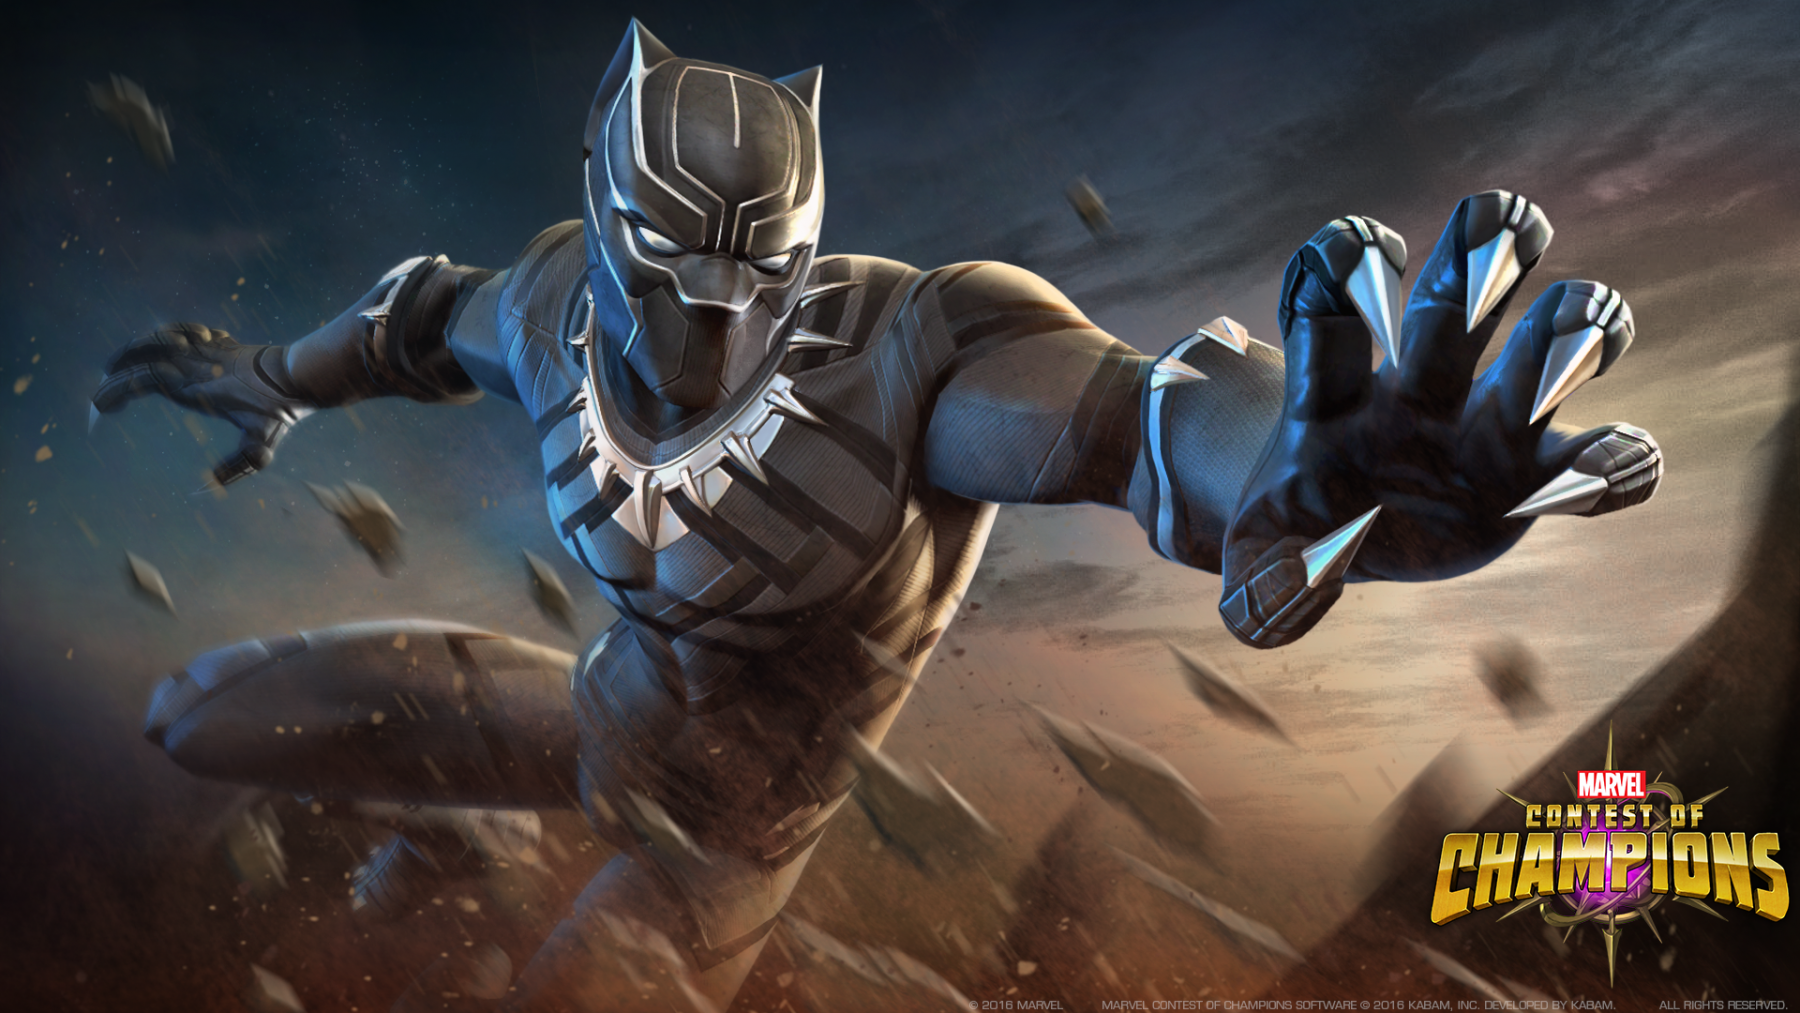 Marvel Hd Wallpapers And Background Images Yl Computing